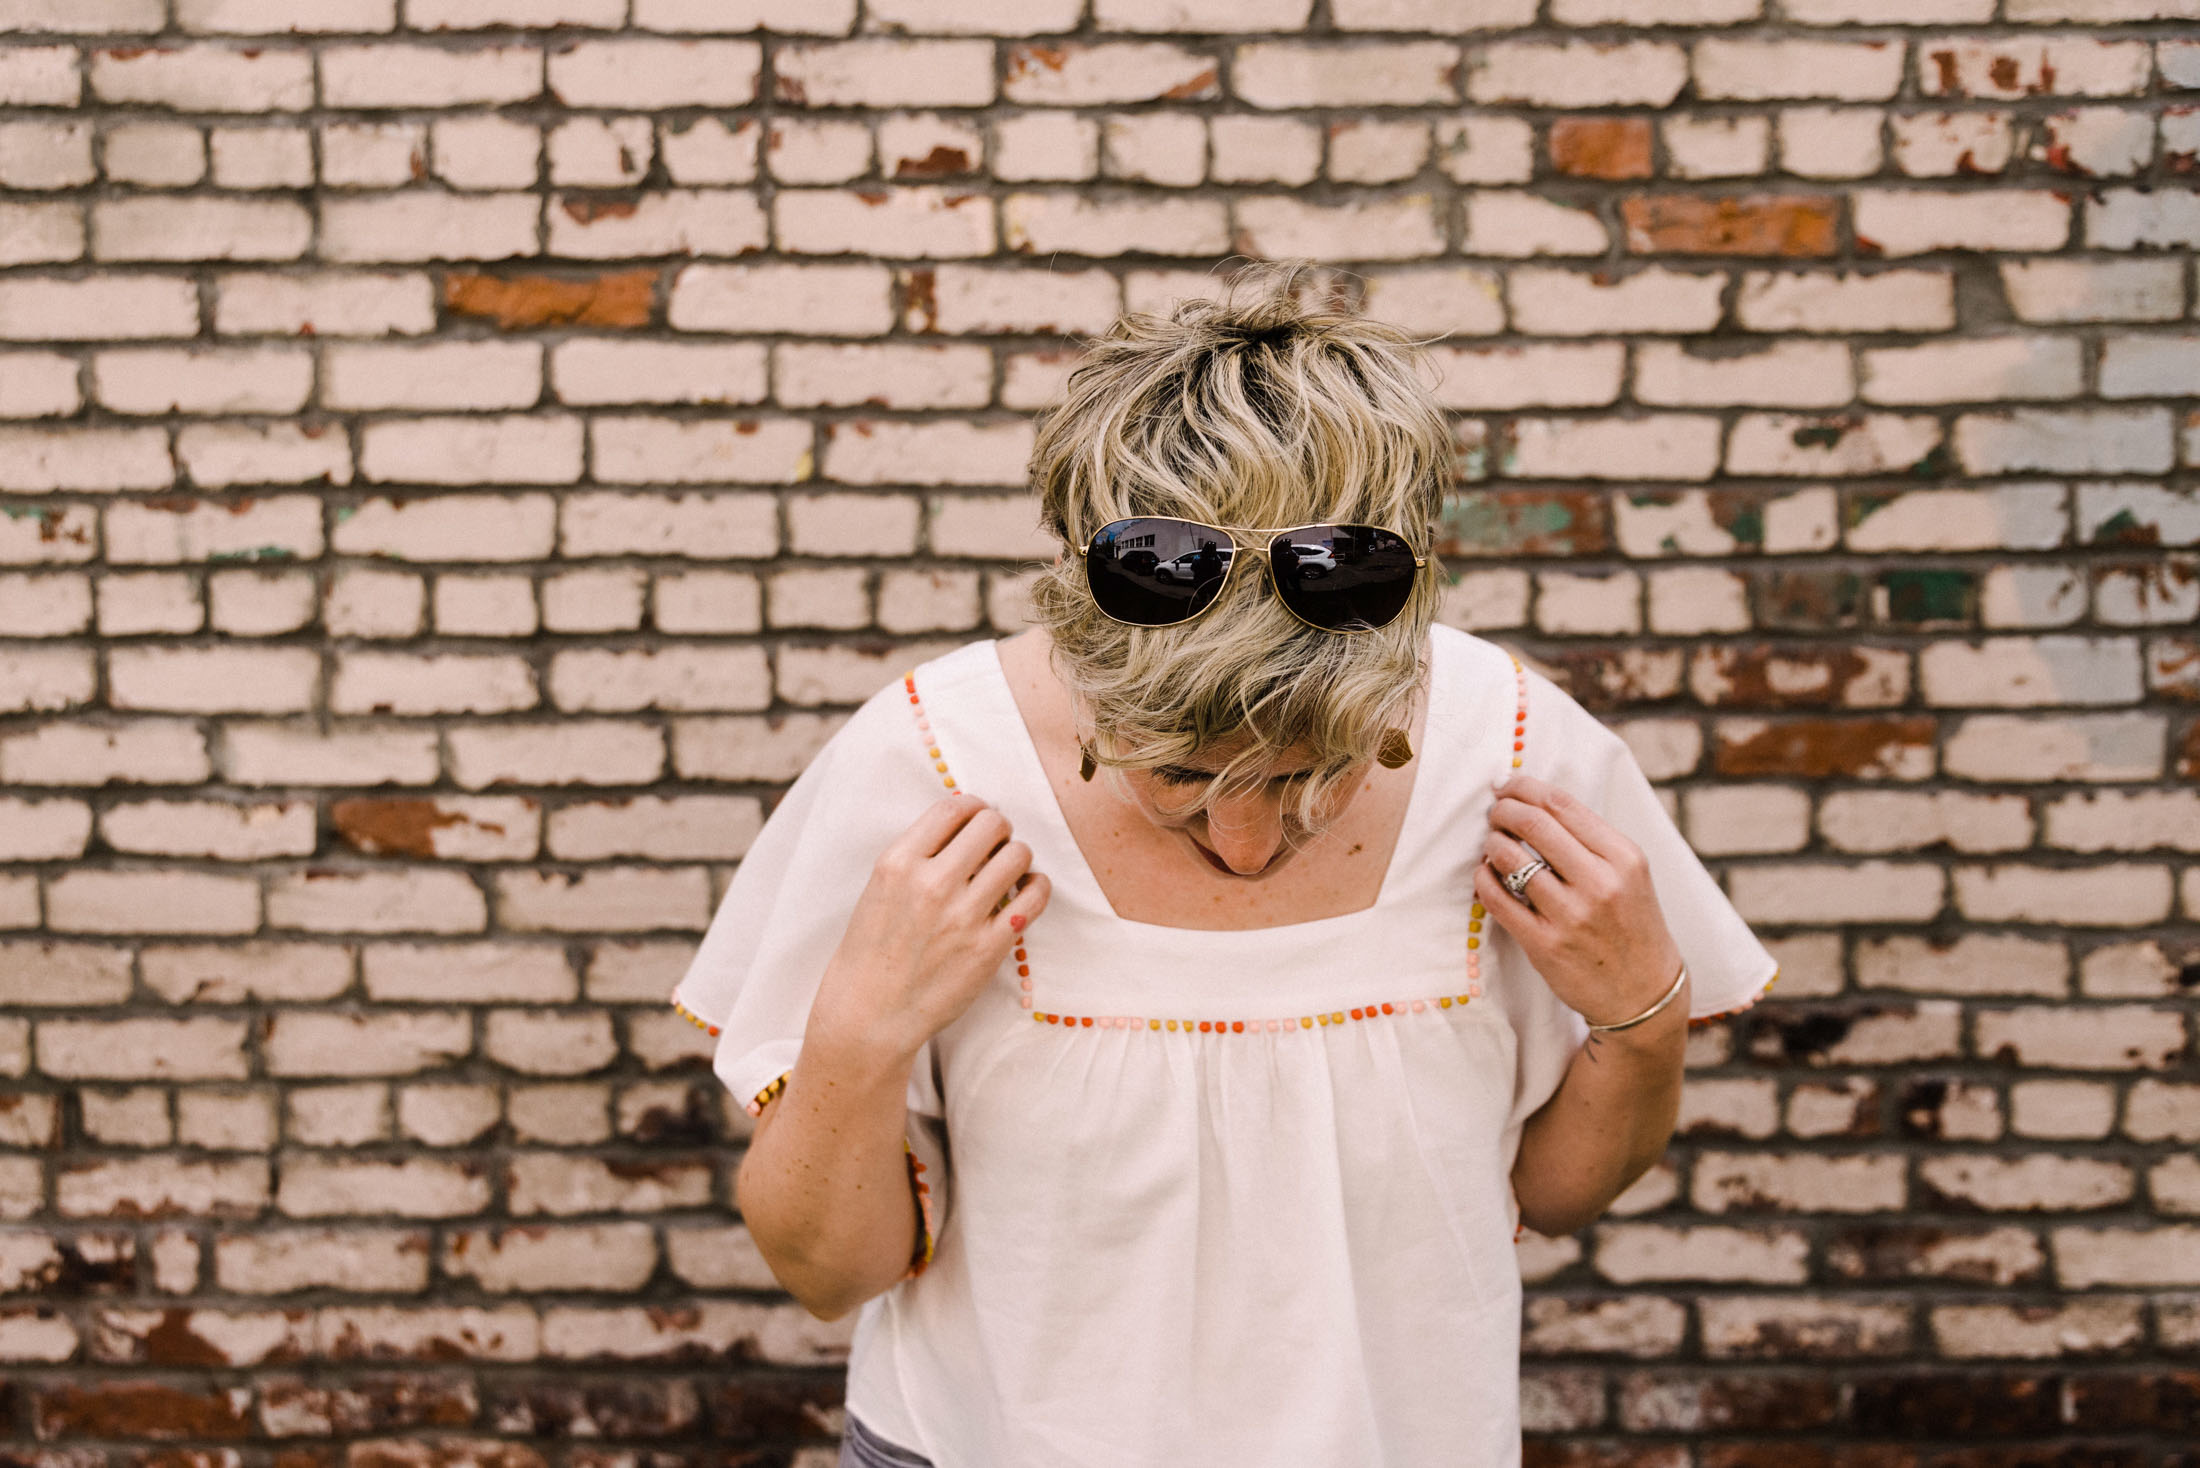 Your standard white tee & jeans outfit? Meh...it's a classic, but for a change, we're trying pretty embroidered shirts as an alternative. Check it out.